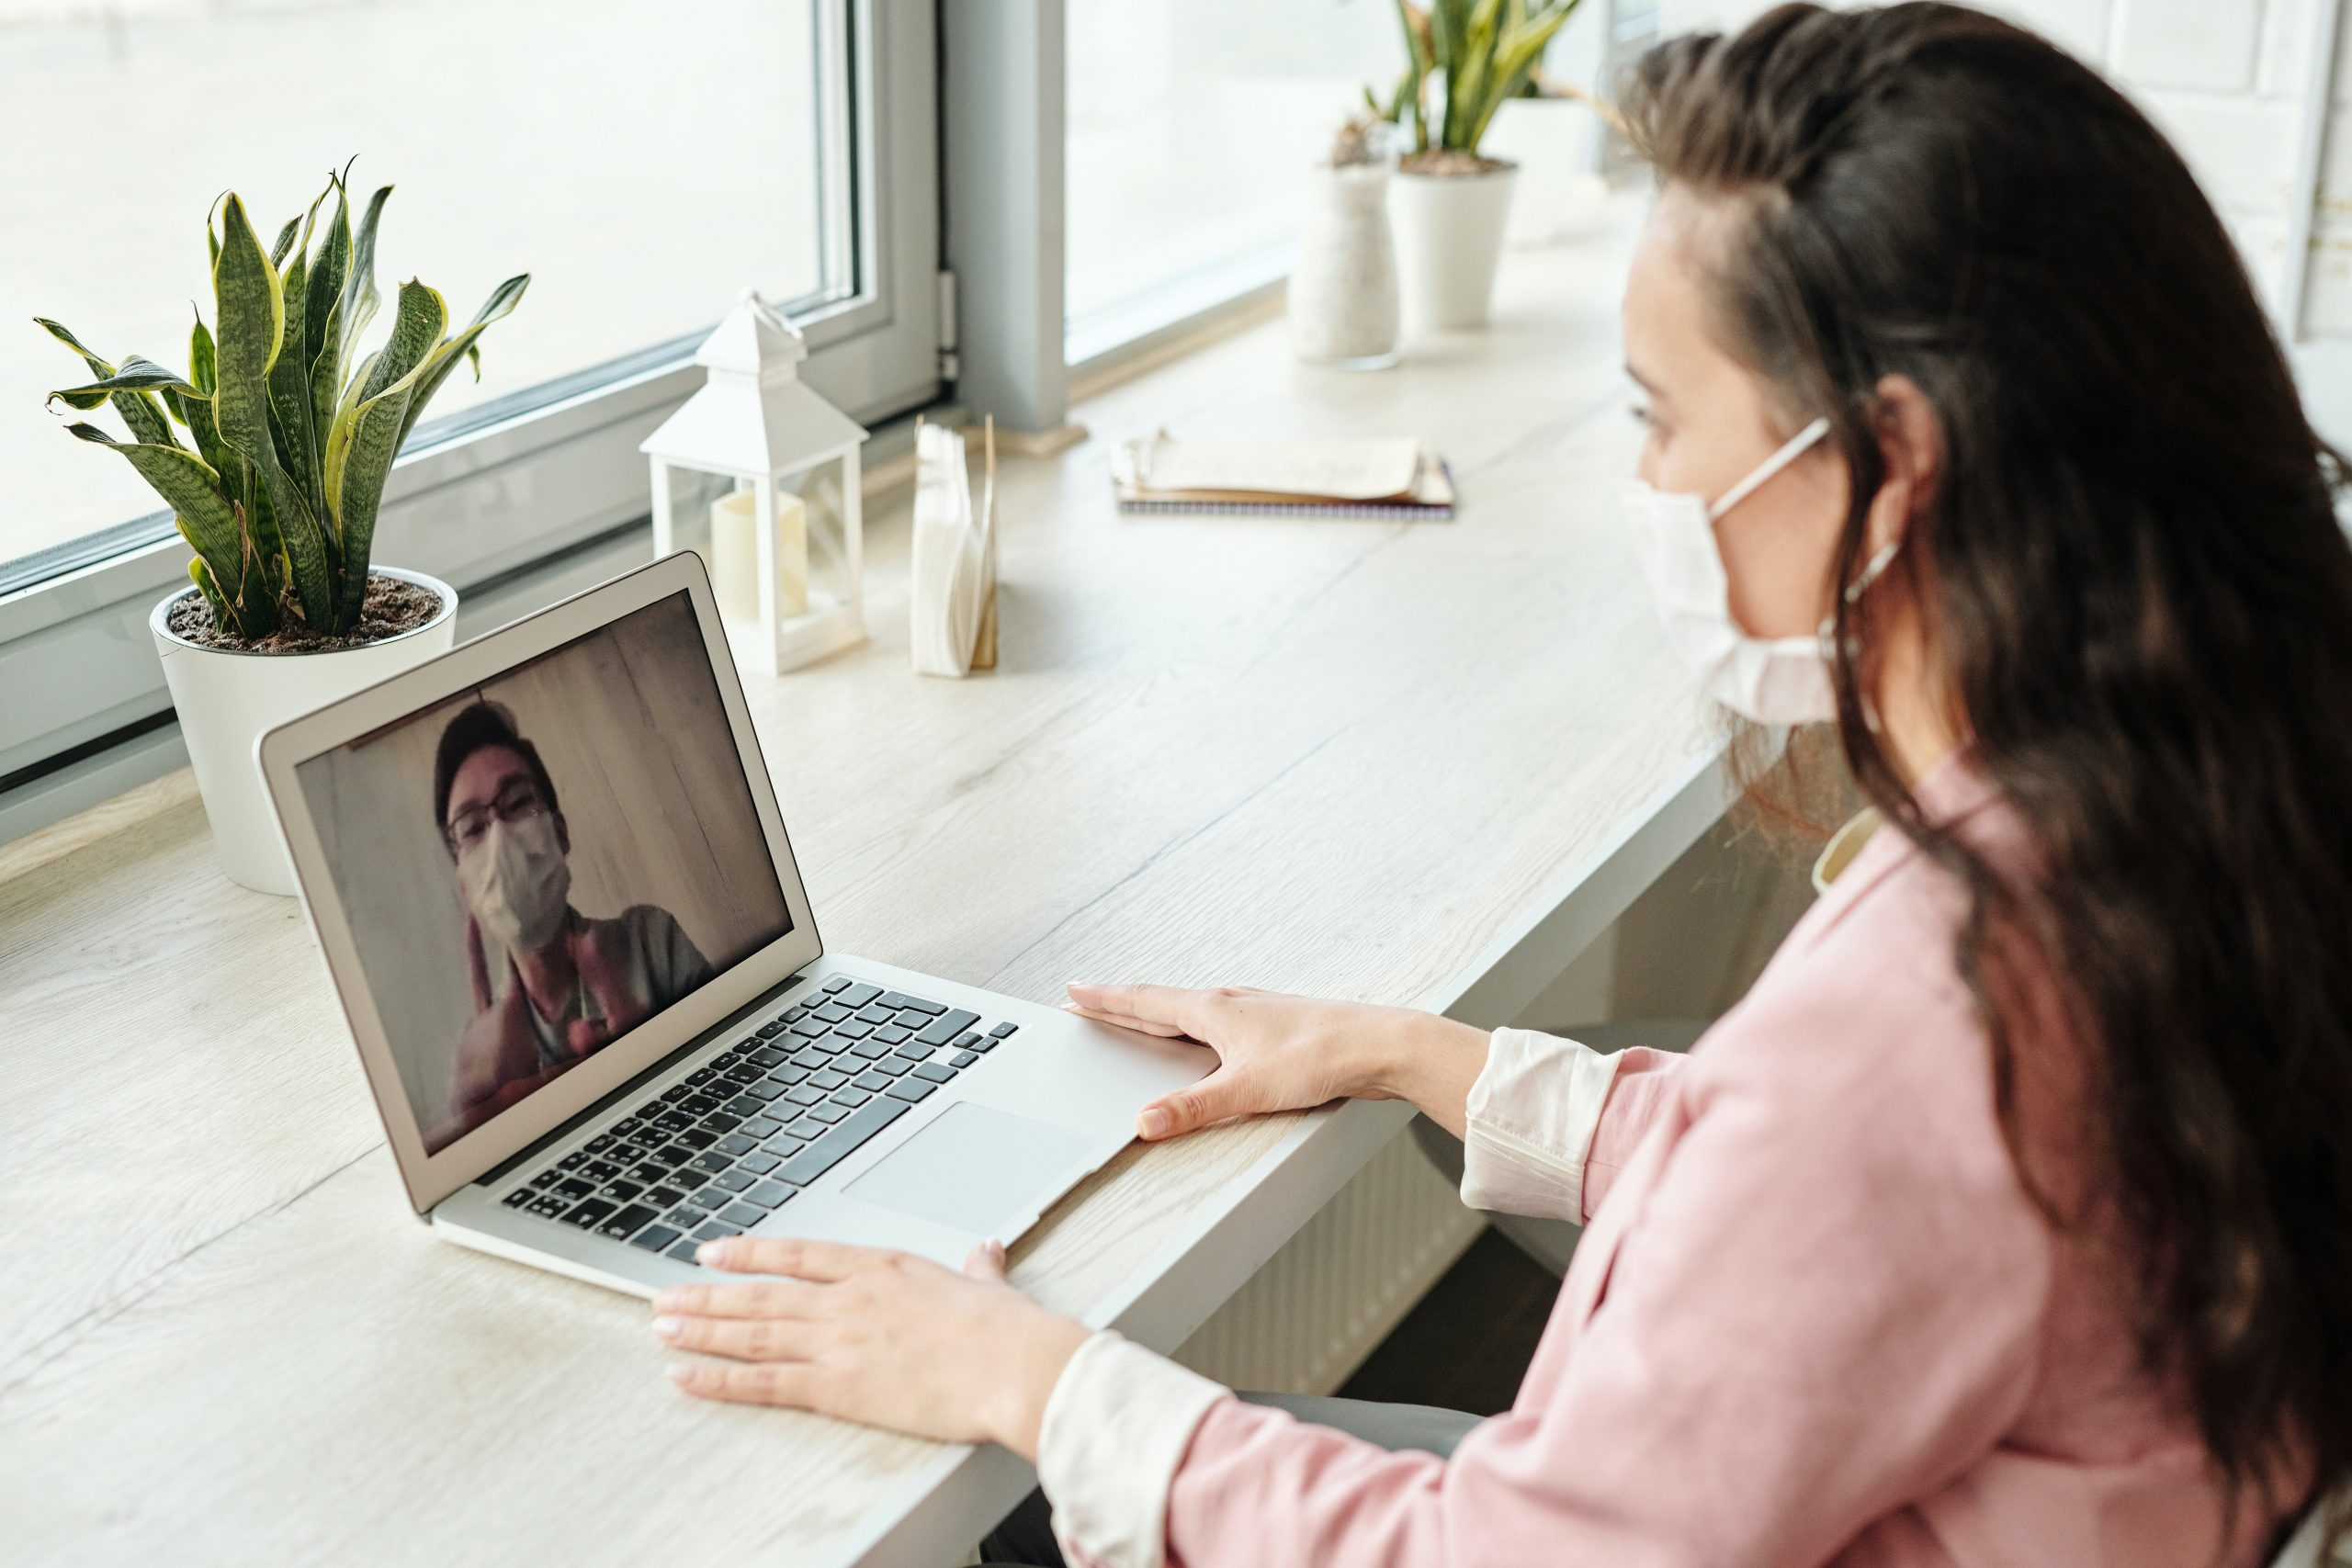 Cancer patient receiving second opinion cancer treatment with an Oncologist over video call